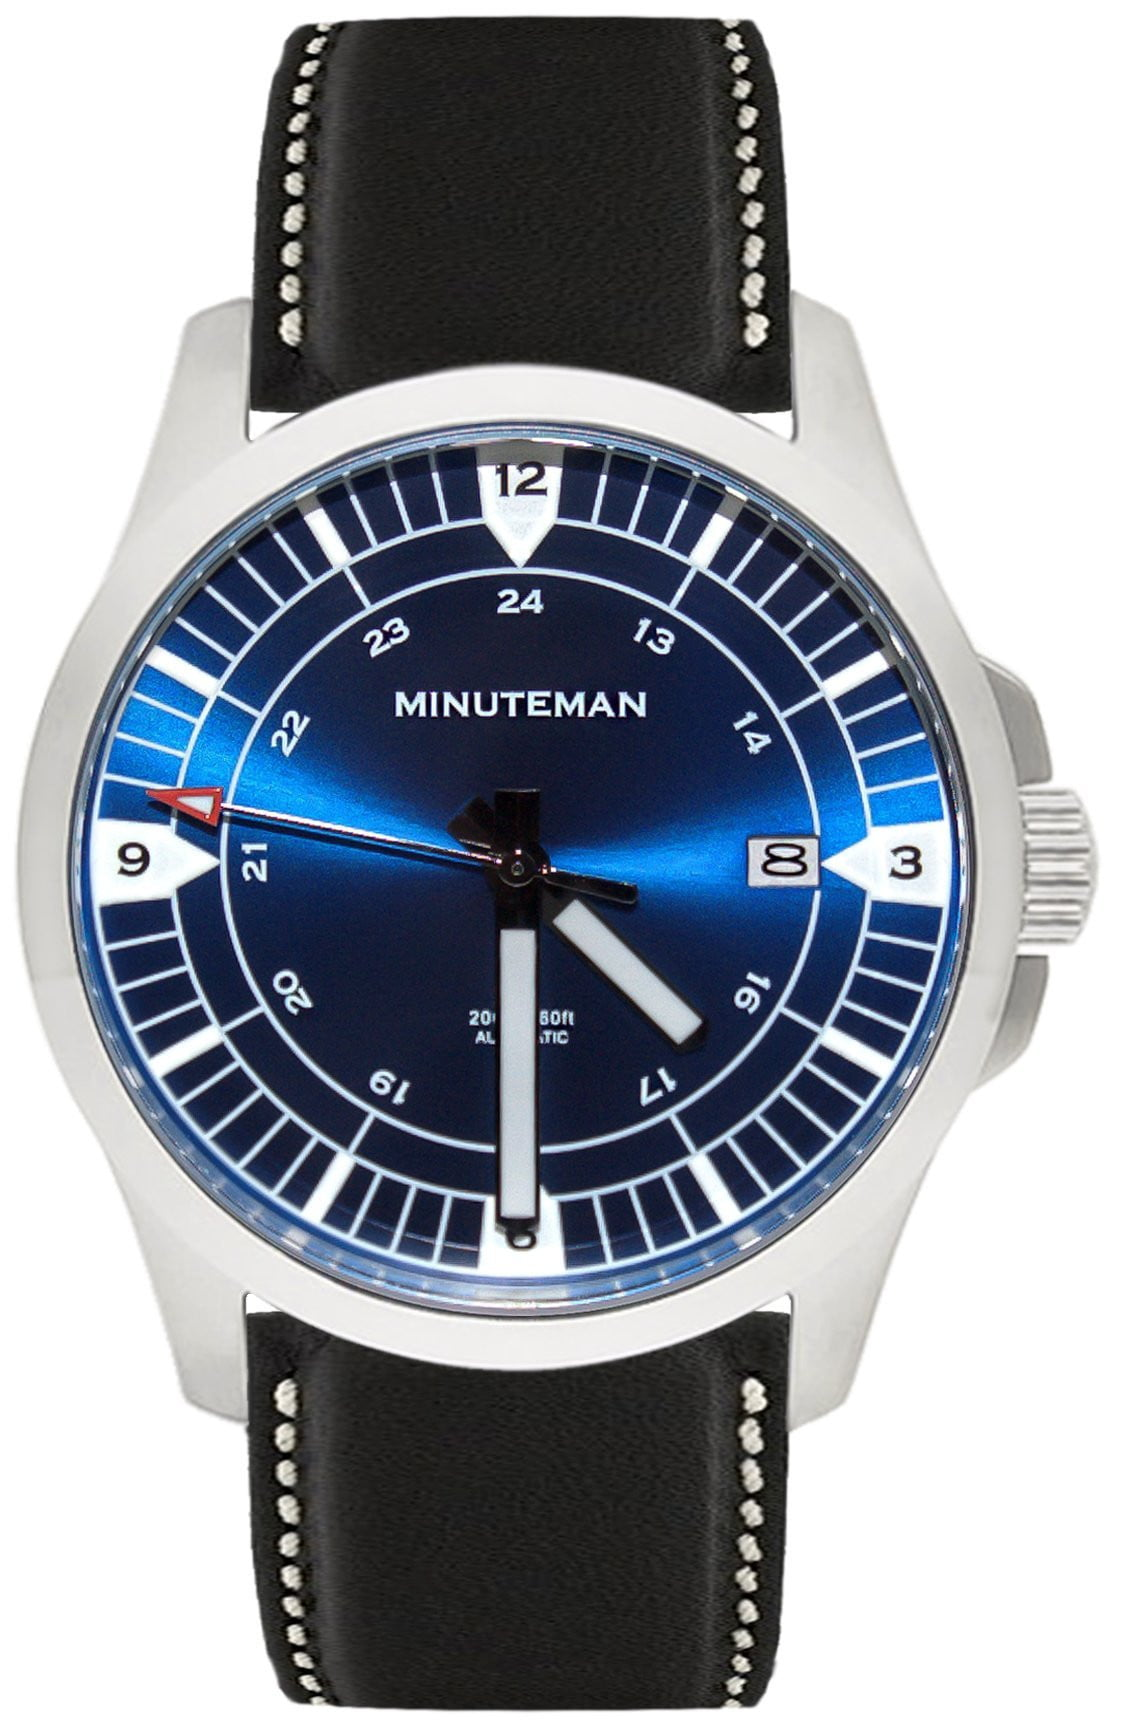 Minuteman RWB brushed finish leather strap USA assembled wristwatch,minutemanwatches,Minuteman,Wrist Watch